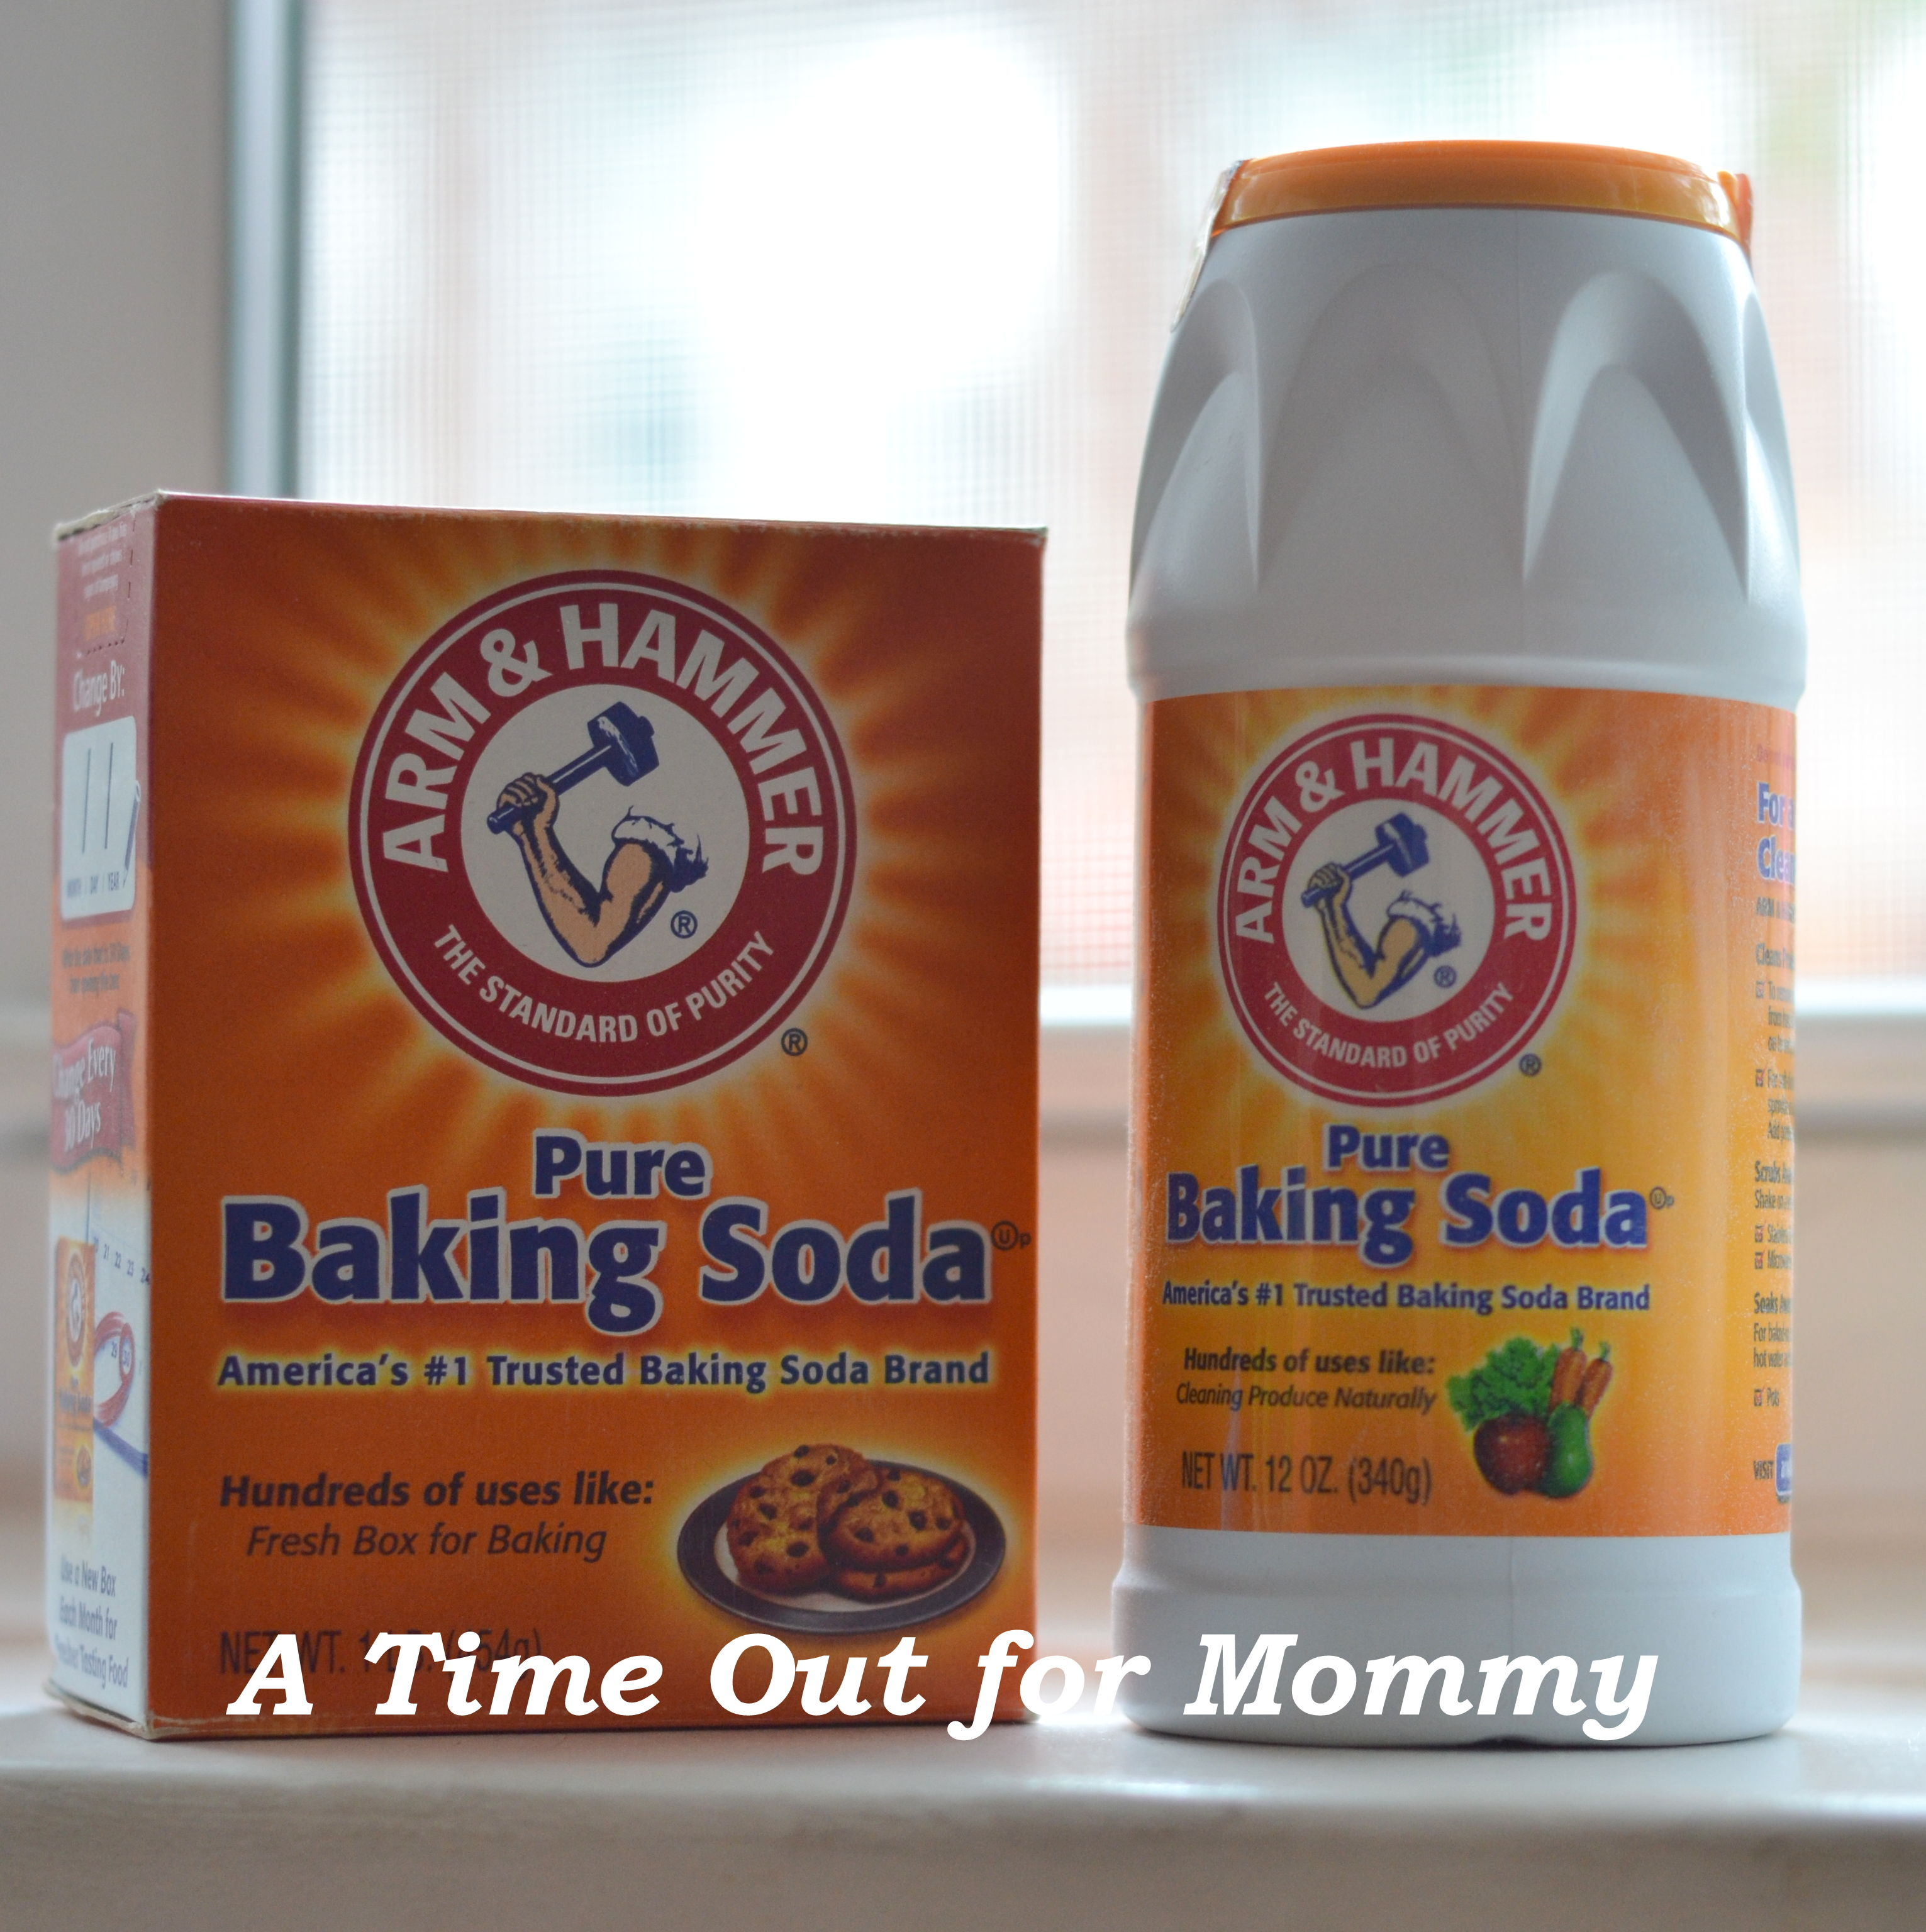 reliance baking soda optimizing promotional spending Reliance baking soda: optimizing promotional spending (brief case) case solution, case analysis, case study solution email us directly at: casesolutionsavailable(at)gmail(dot)com please.